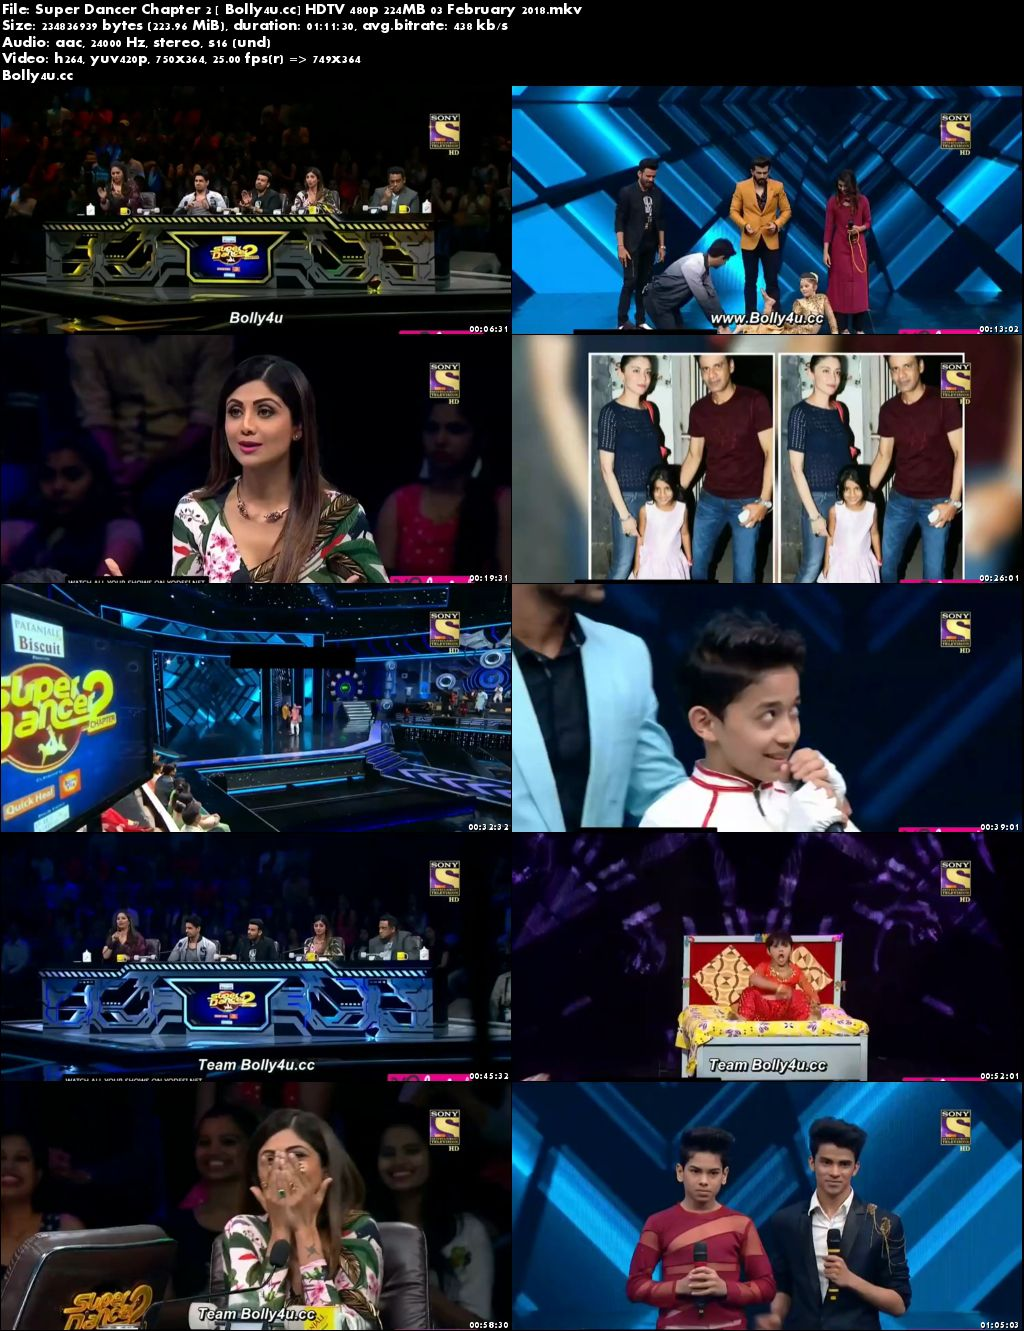 Super Dancer Chapter 2 HDTV 480p 200MB 03 February 2018 Download